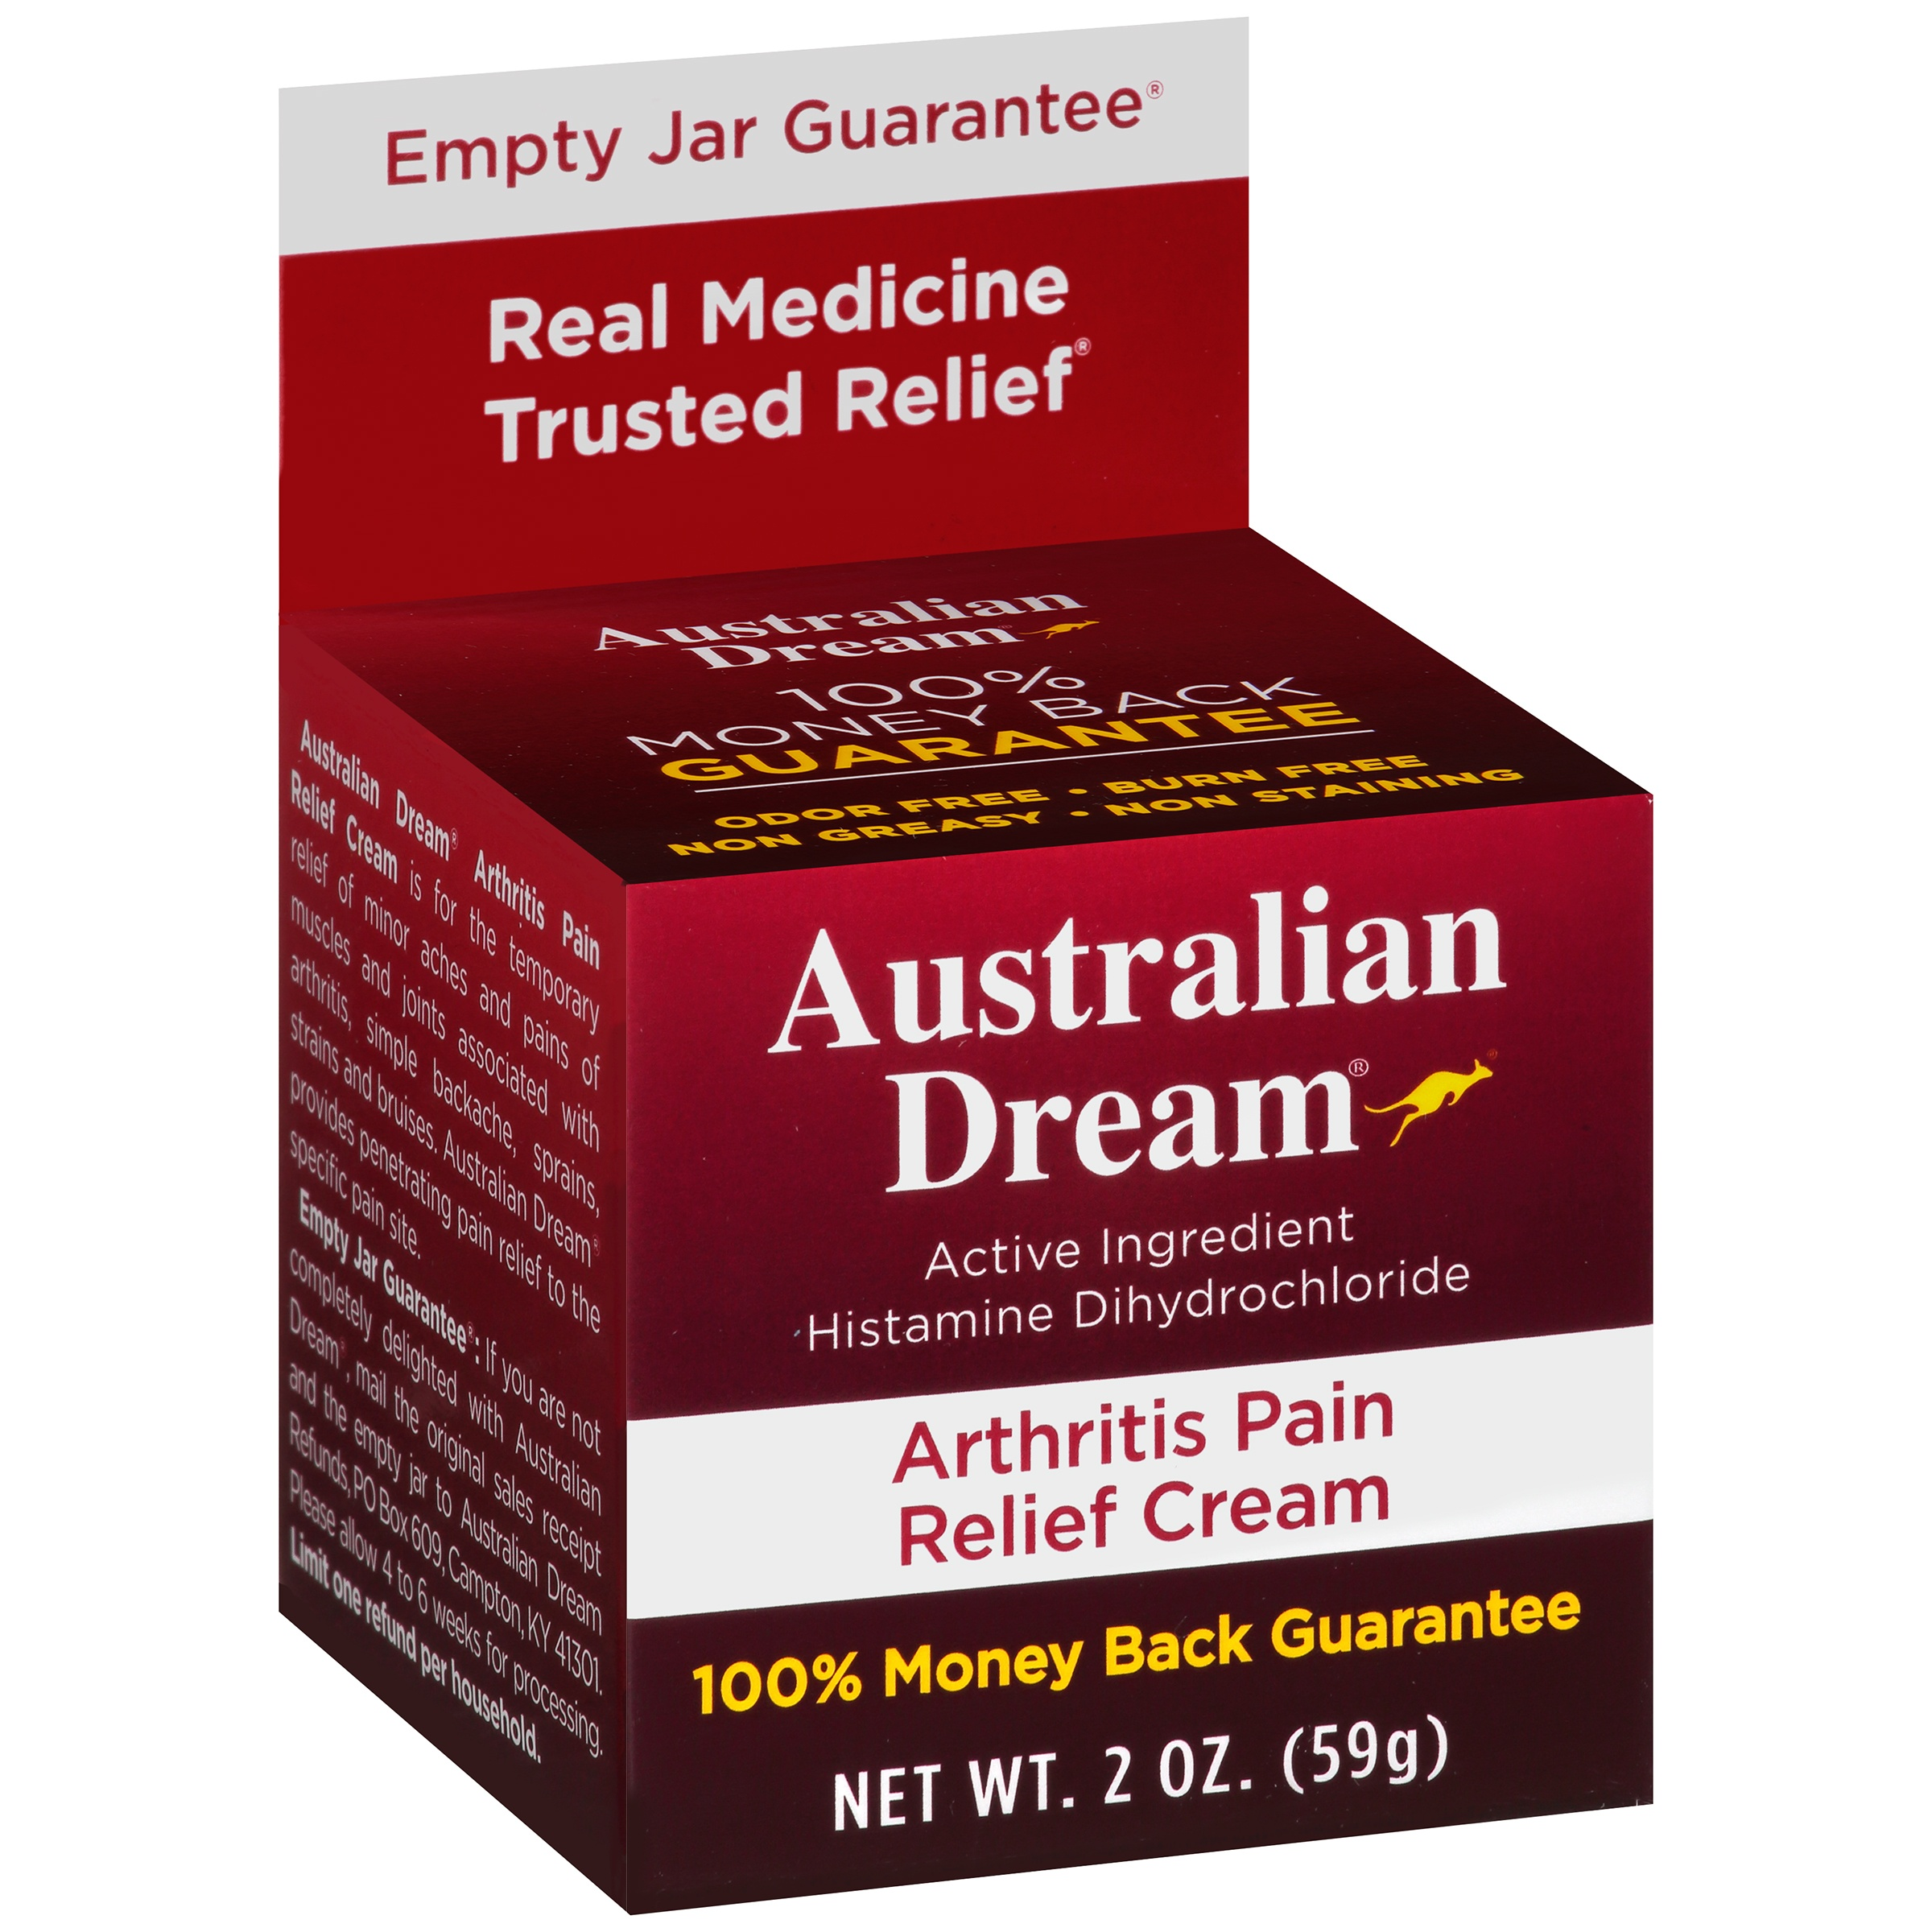 Australian Dream Arthritis Pain Relief Cream, 2 oz